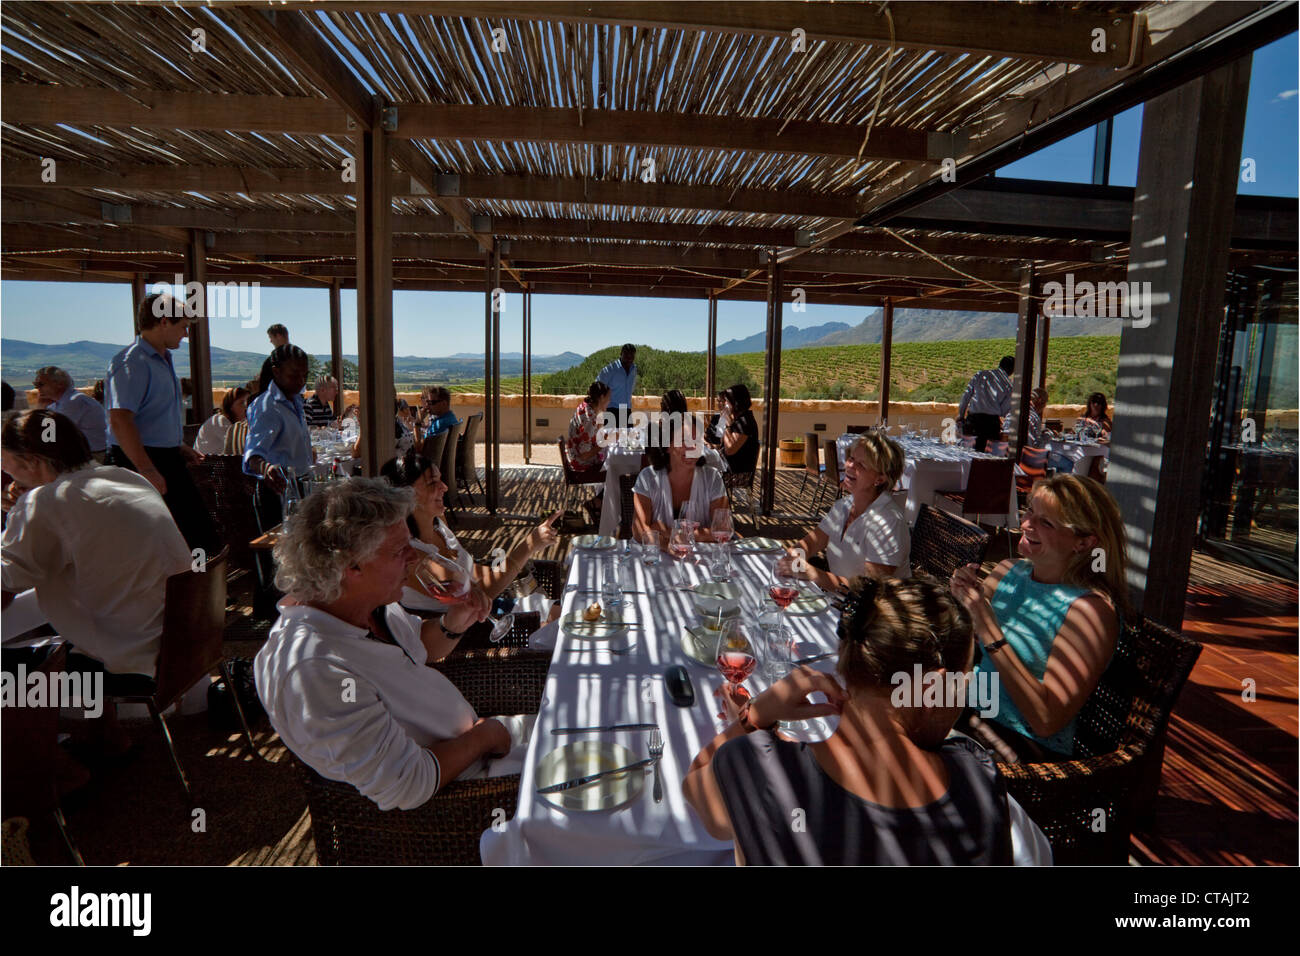 Terrace of Restaurant Guardian Peak, Stellenbosch, Kapstadt, Western Cape, South Africa - Stock Image